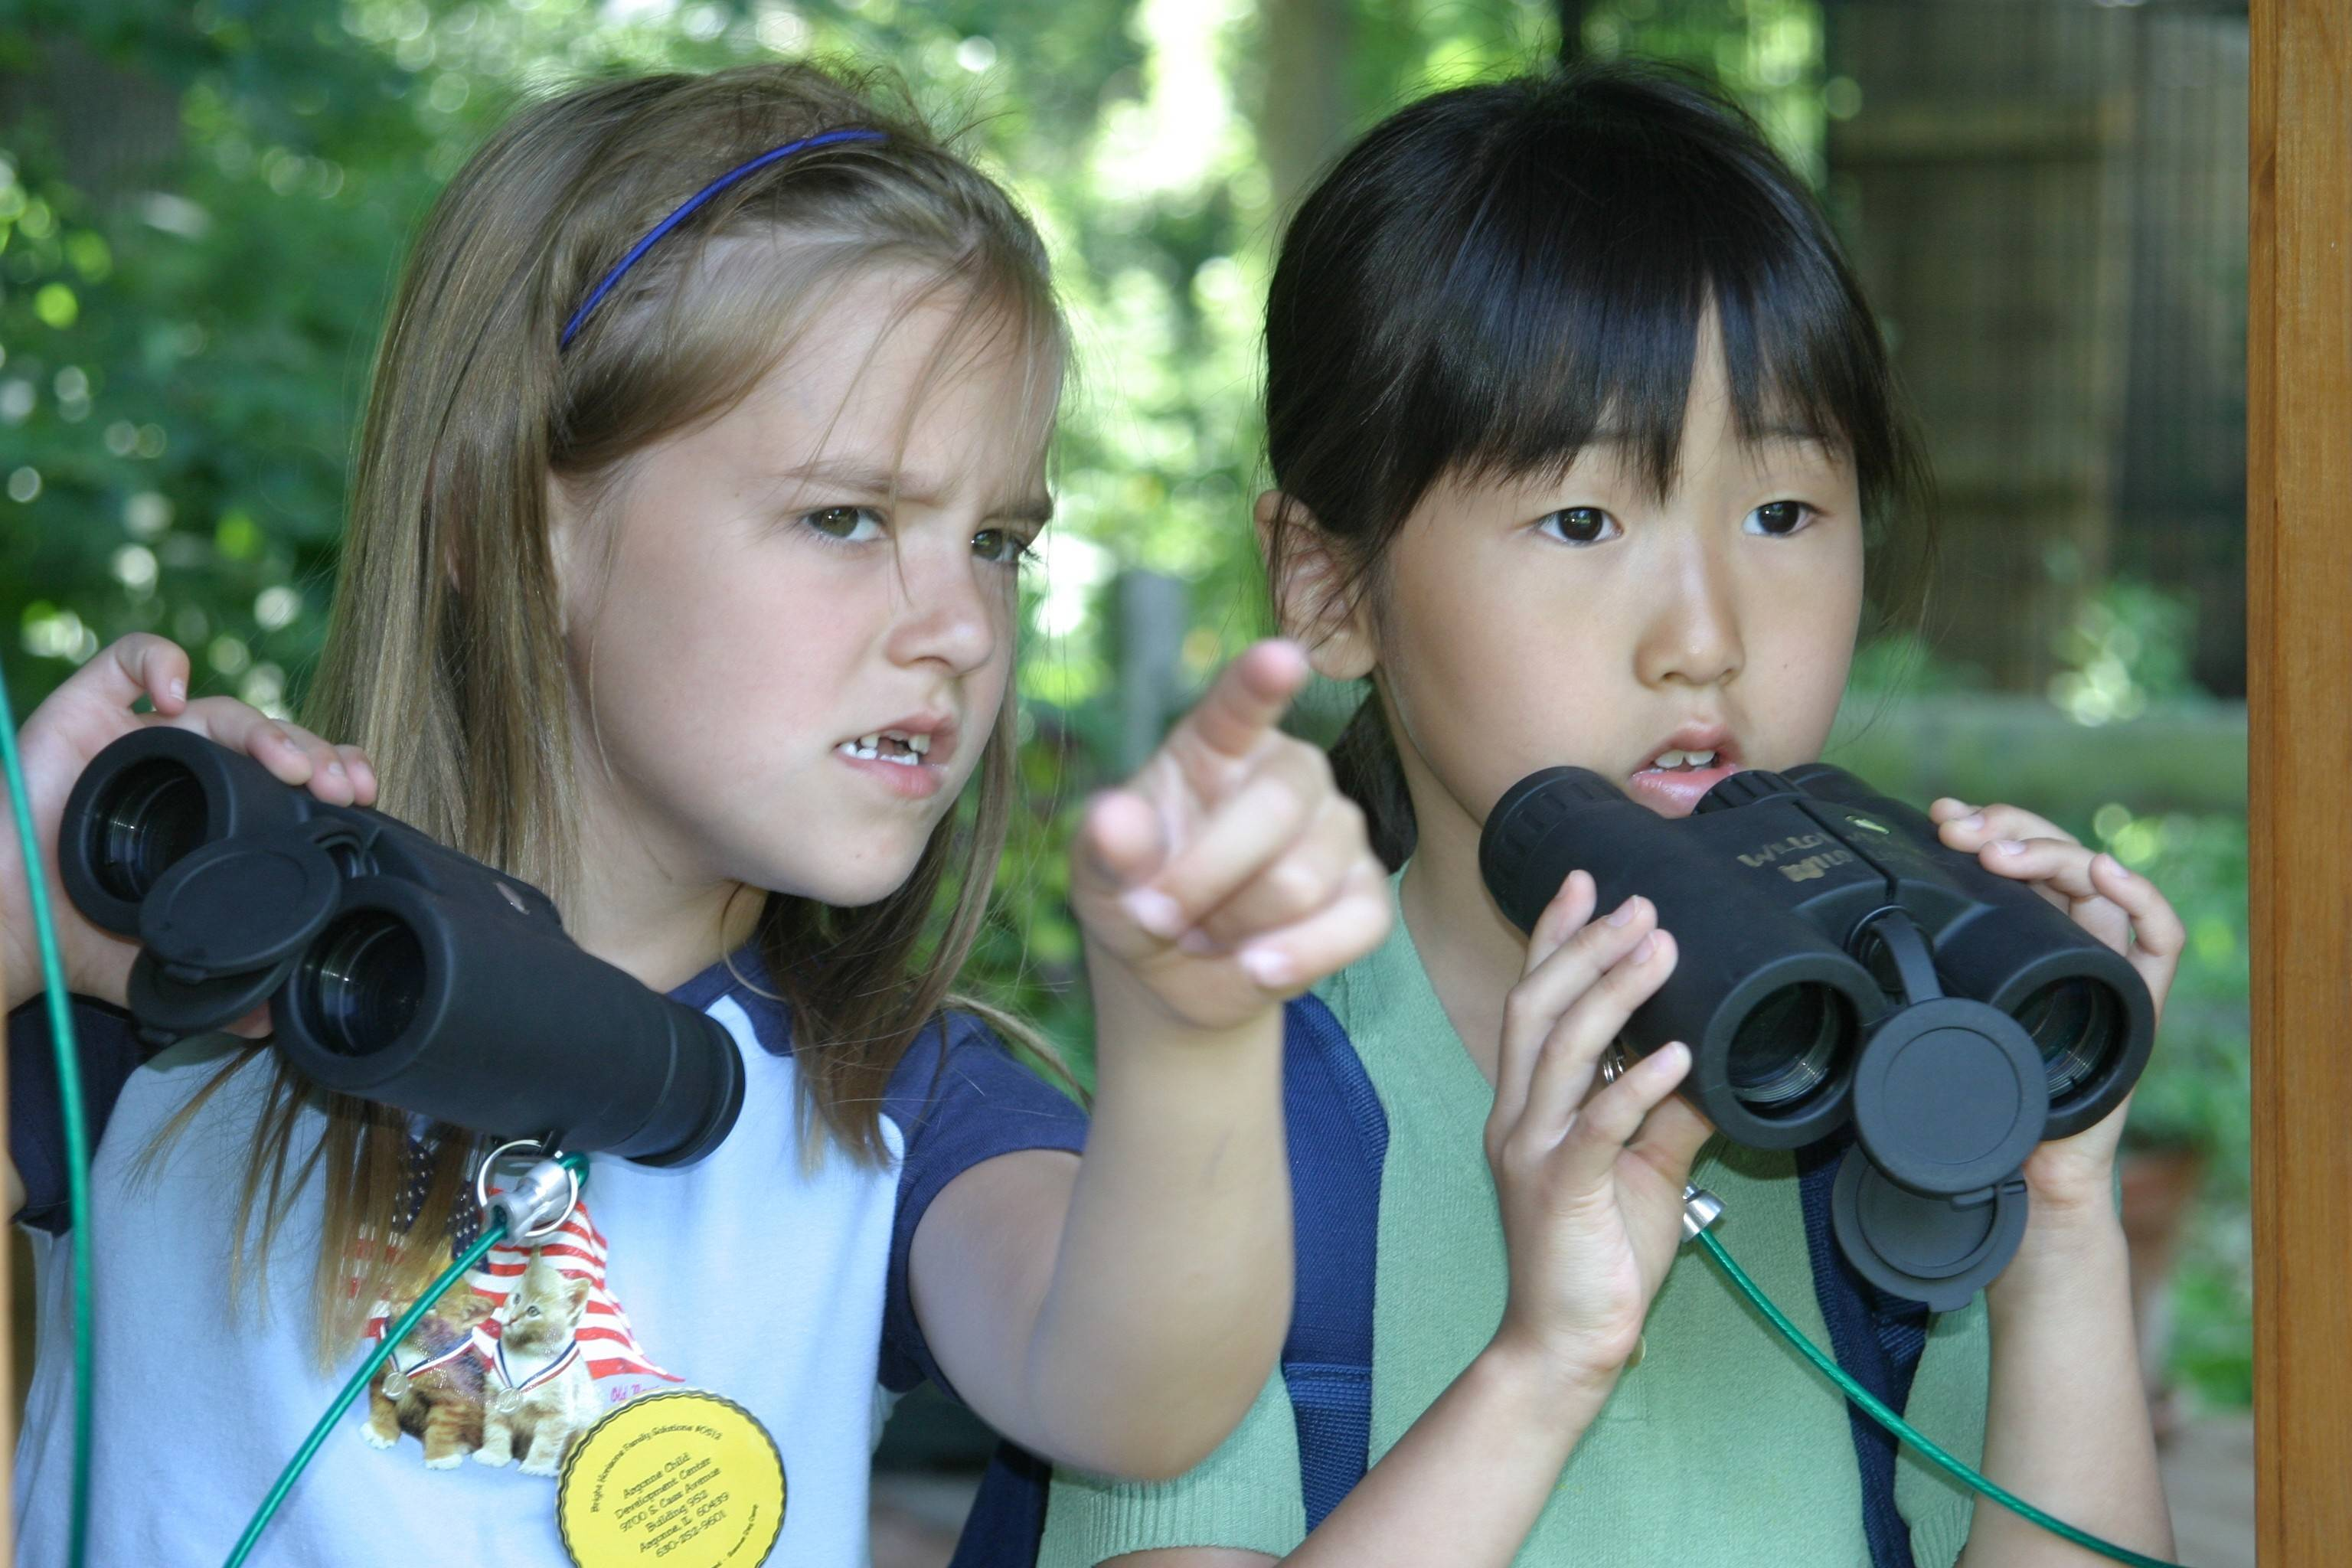 The Forest Preserve District of DuPage County will be offering a variety of camps for kids this spring and summer.